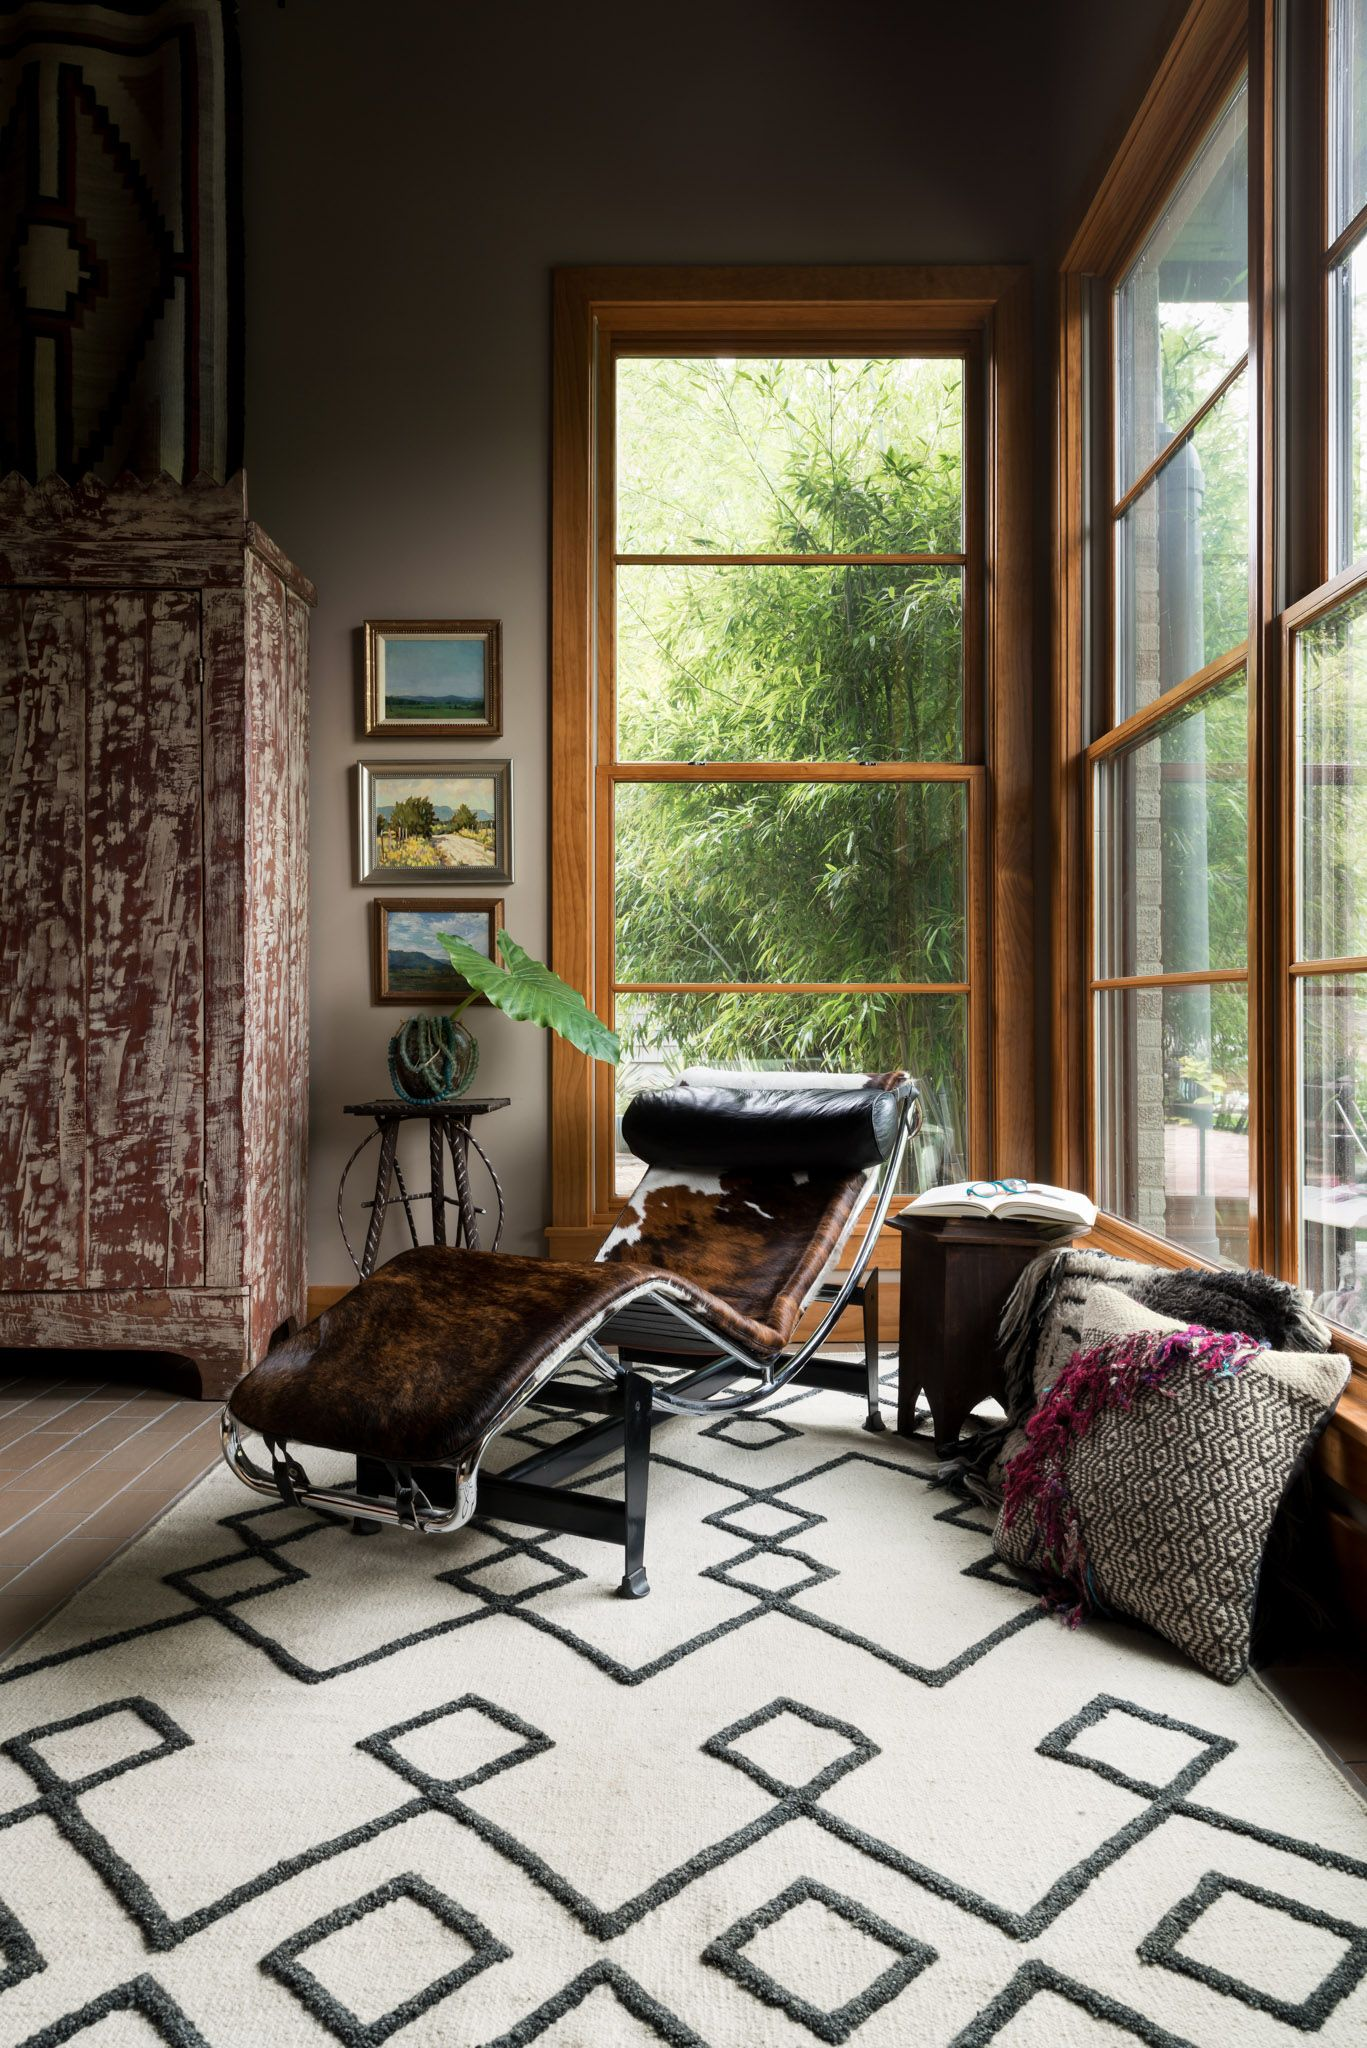 Beautiful Elite Furniture Gallery NC Furniture Loloi Rugs High Point Market  Www.elitefurnituregallery.com 843.449